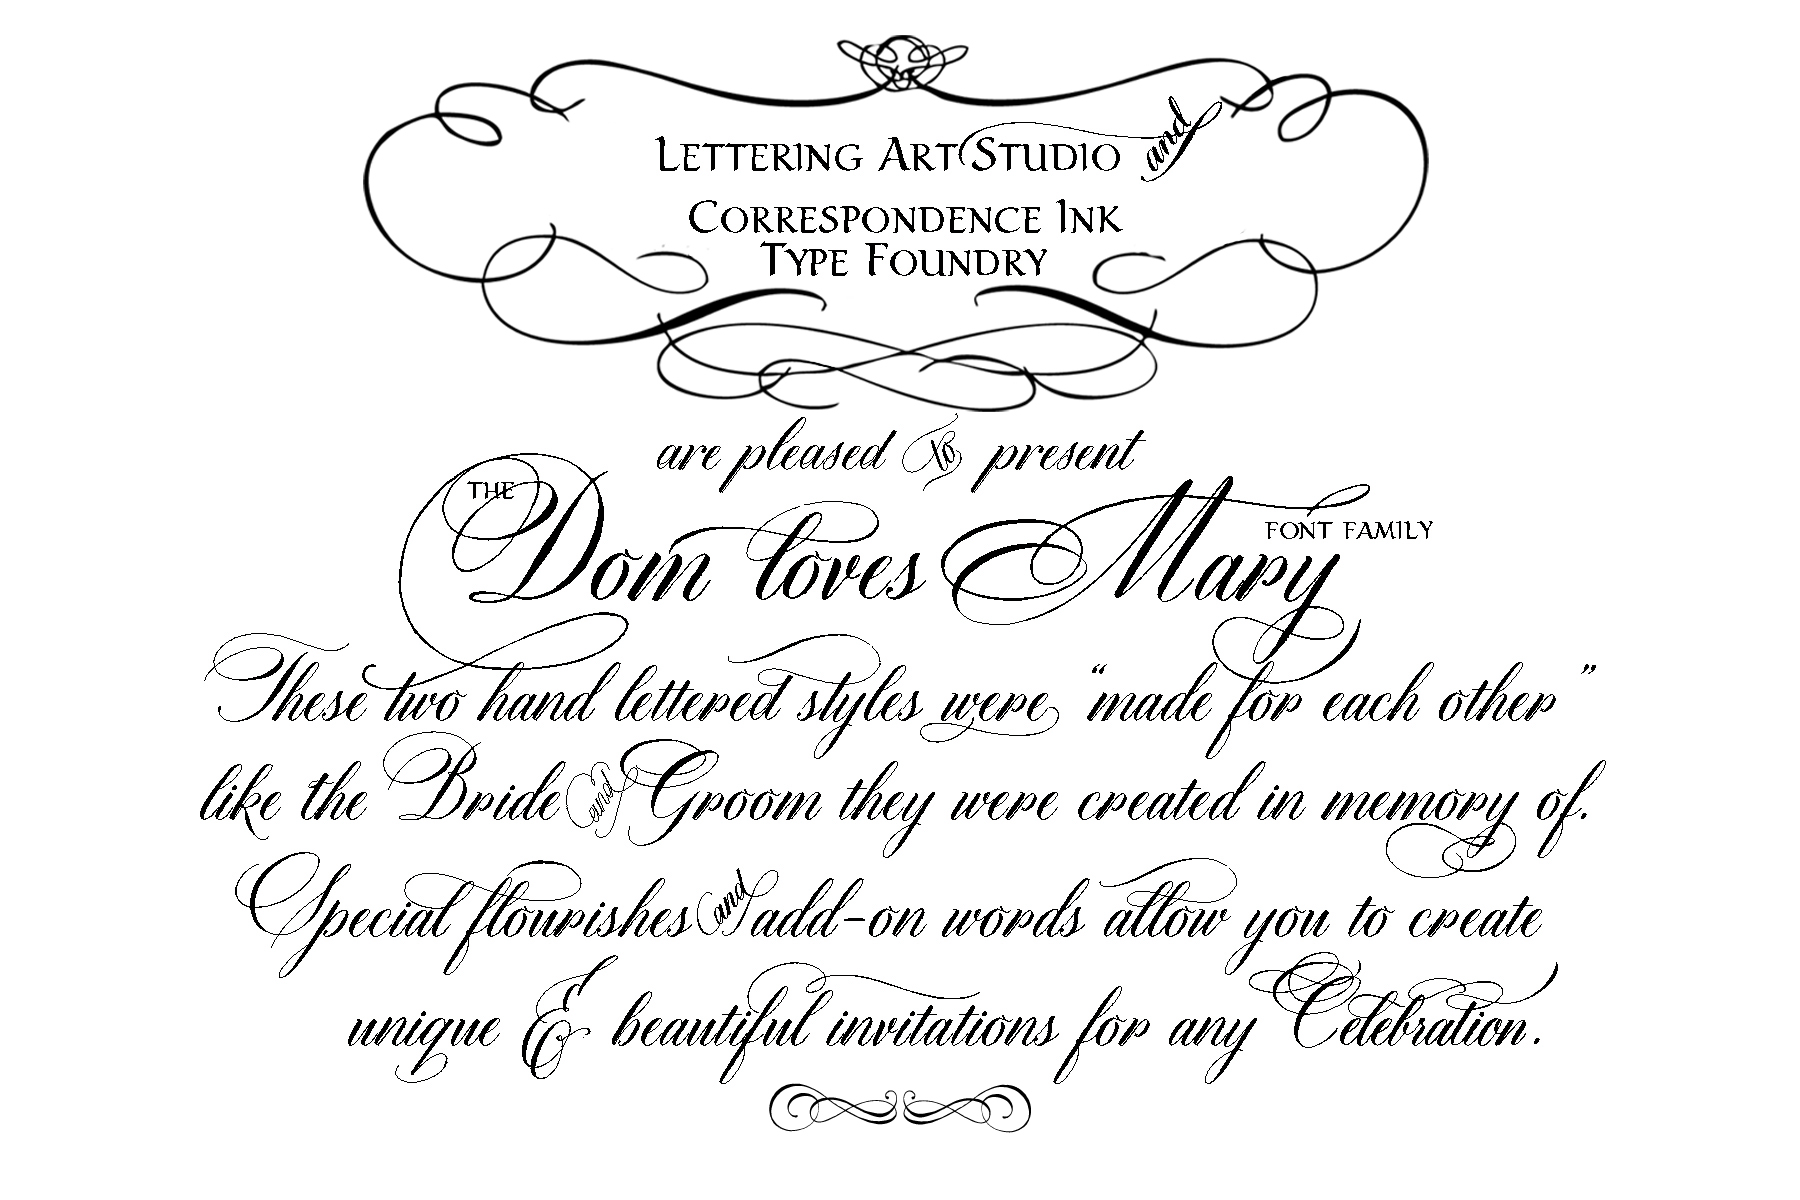 Calligraphy Fonts List Dom Loves Mary Calligraphy Font Is Launched Lettering Art Studio